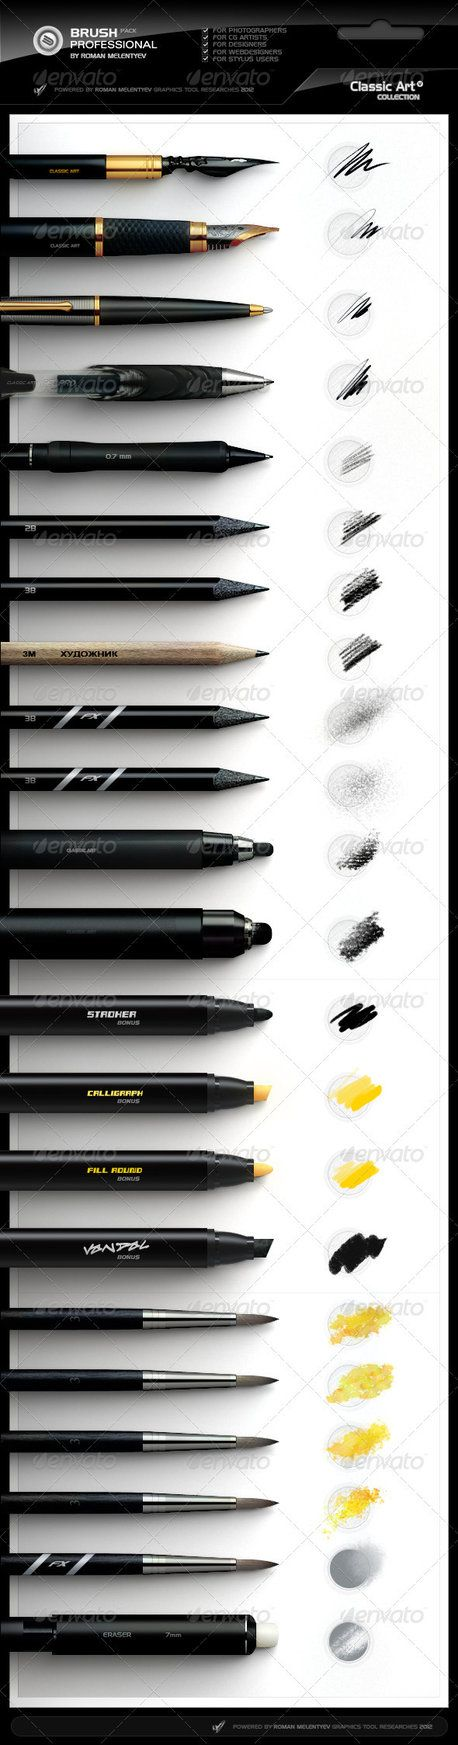 Photoshop Professional Brush Pack vol.4 - Classic ABR | PAT | FREE DOWNLOAD>>>>>>>> herogfx.com/photoshop/745-phot… <<<<<<<<